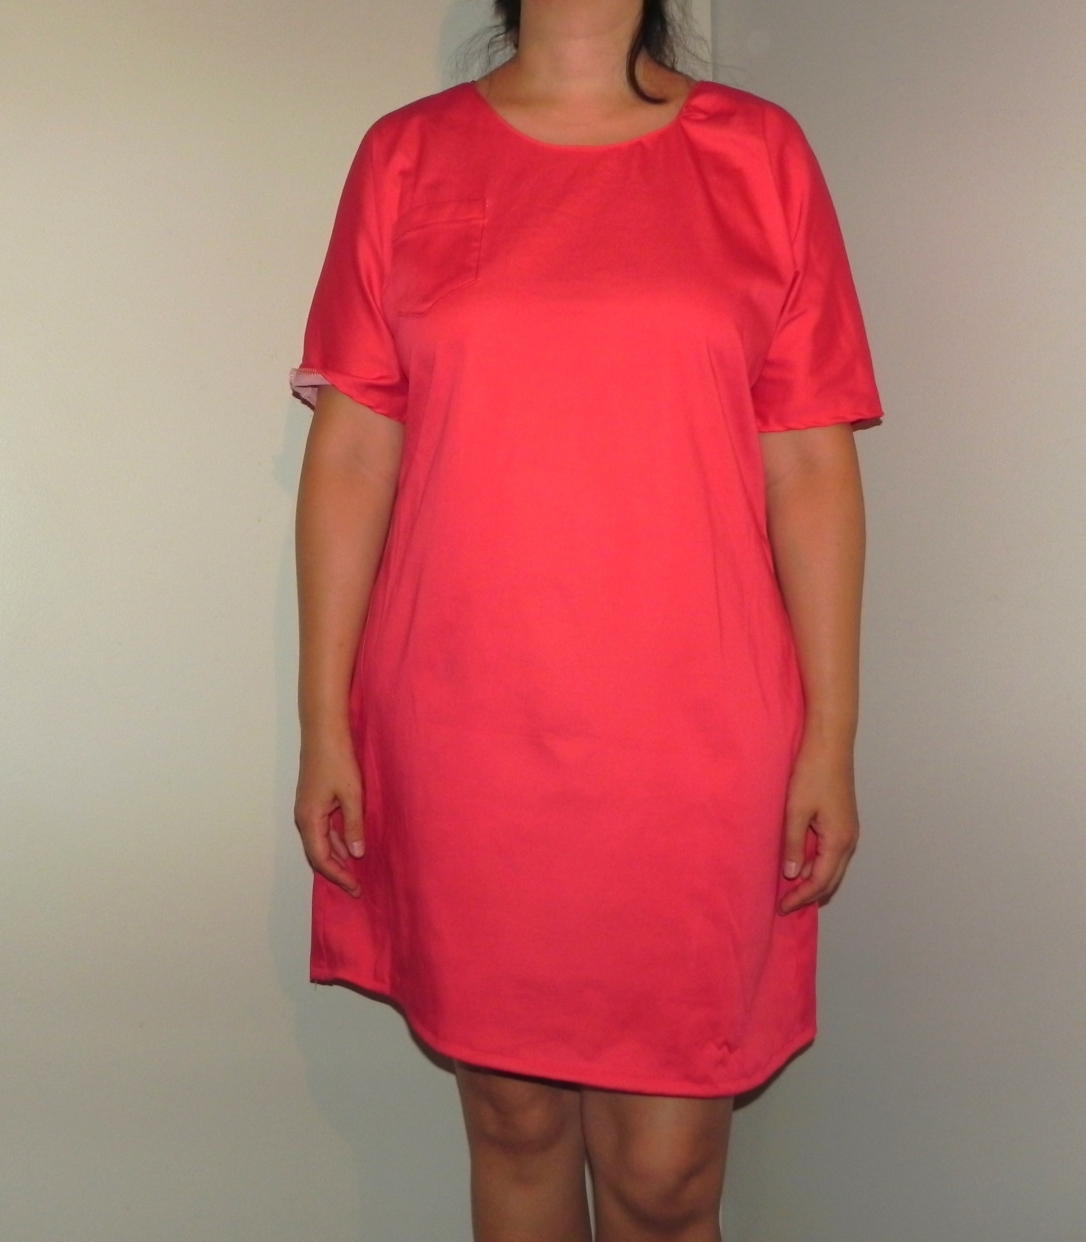 Robe Arume rouge fit général